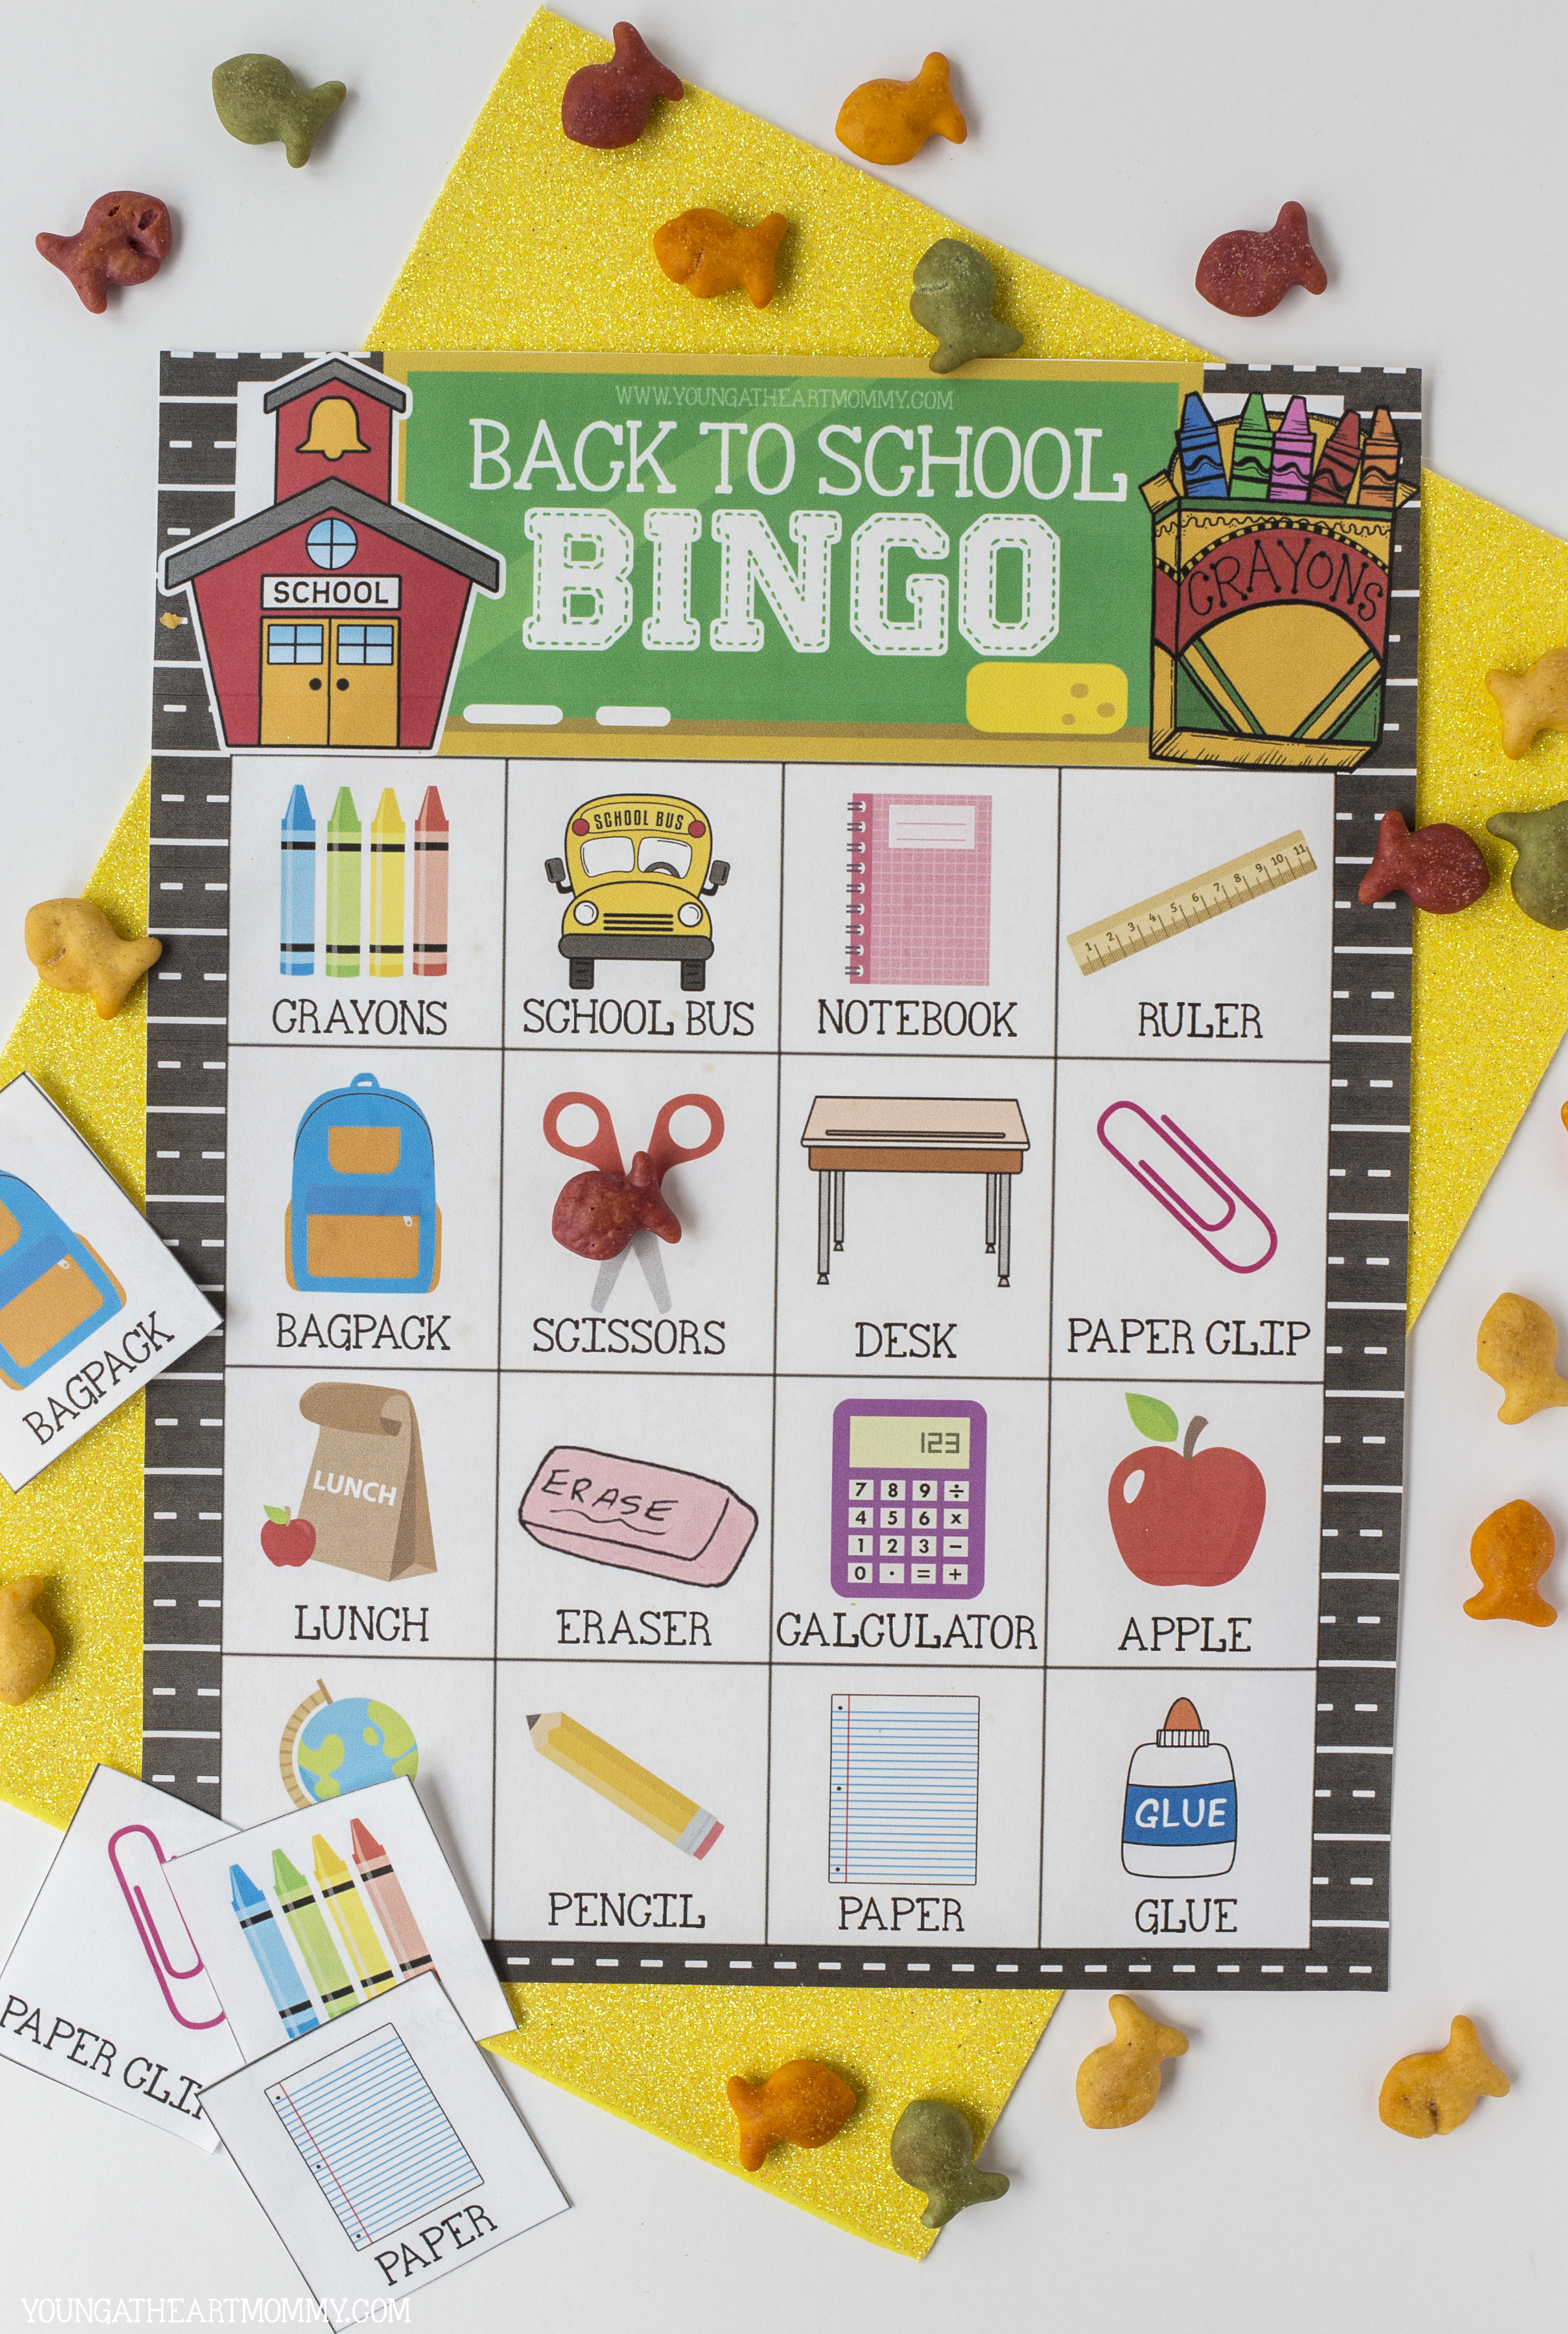 picture relating to Back to School Bingo Printable named BINGO CARD - More youthful At Centre Mommy